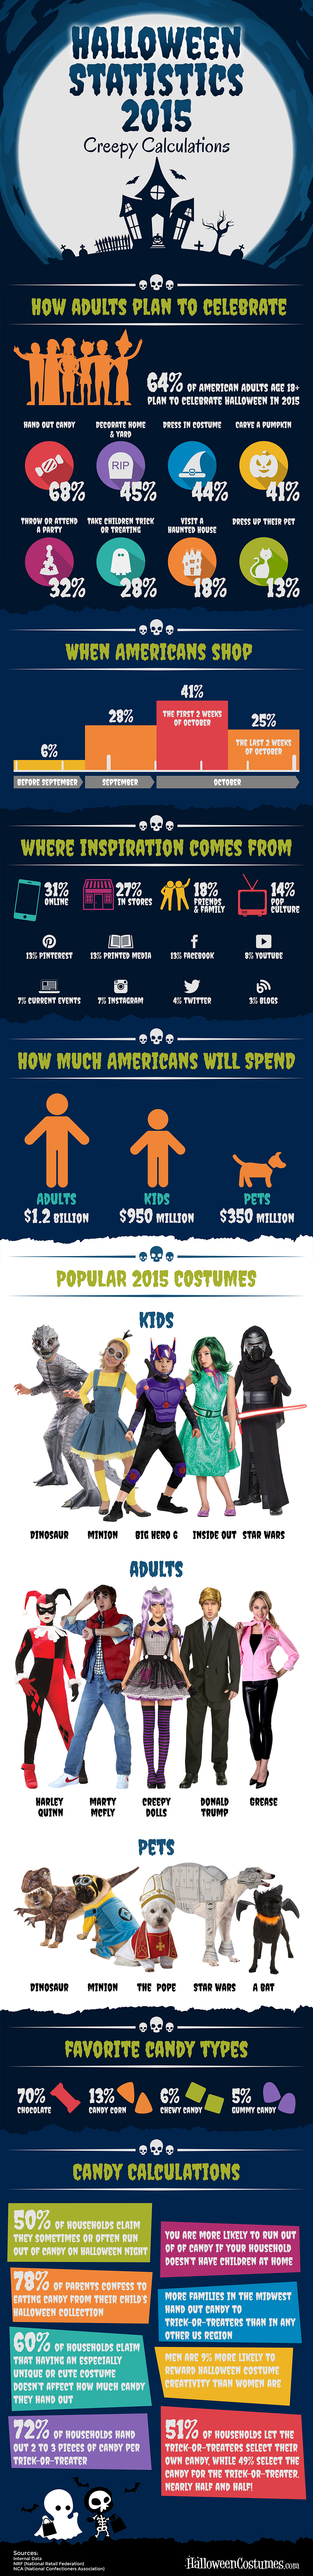 Creepy Calculations: 2015 Halloween Statistics